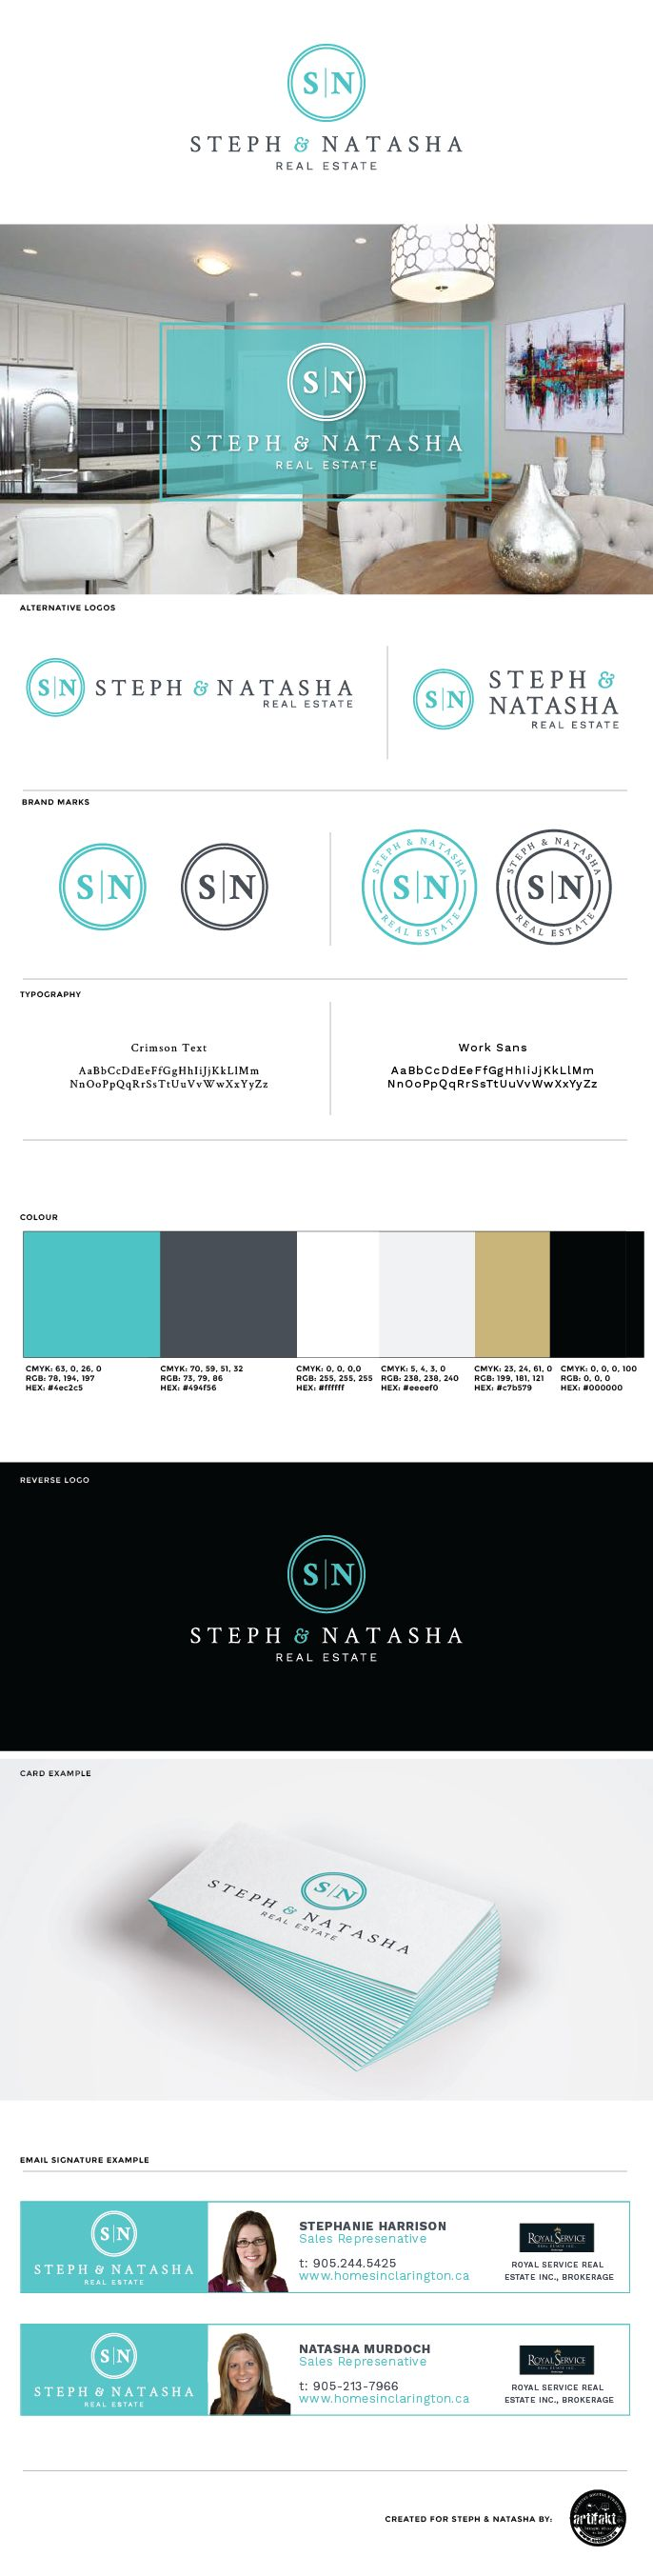 The completed branding guidelines we did for 'Steph and Natasha', a real estate team in Durham region.